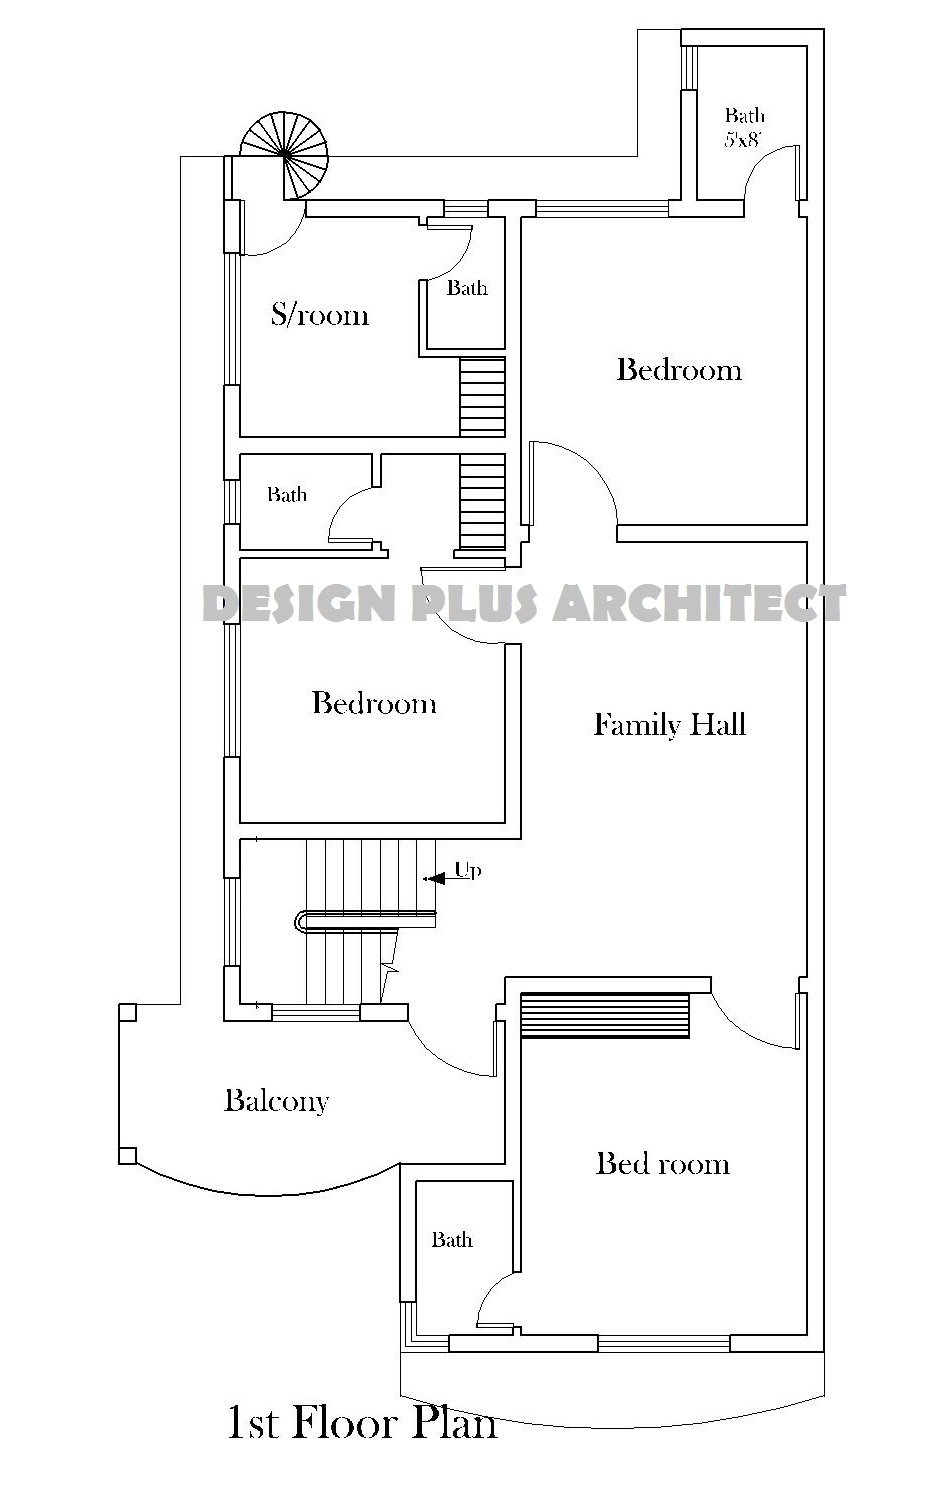 Home Plans In Pakistan  Home Decor  Architect Designer d Home Plan